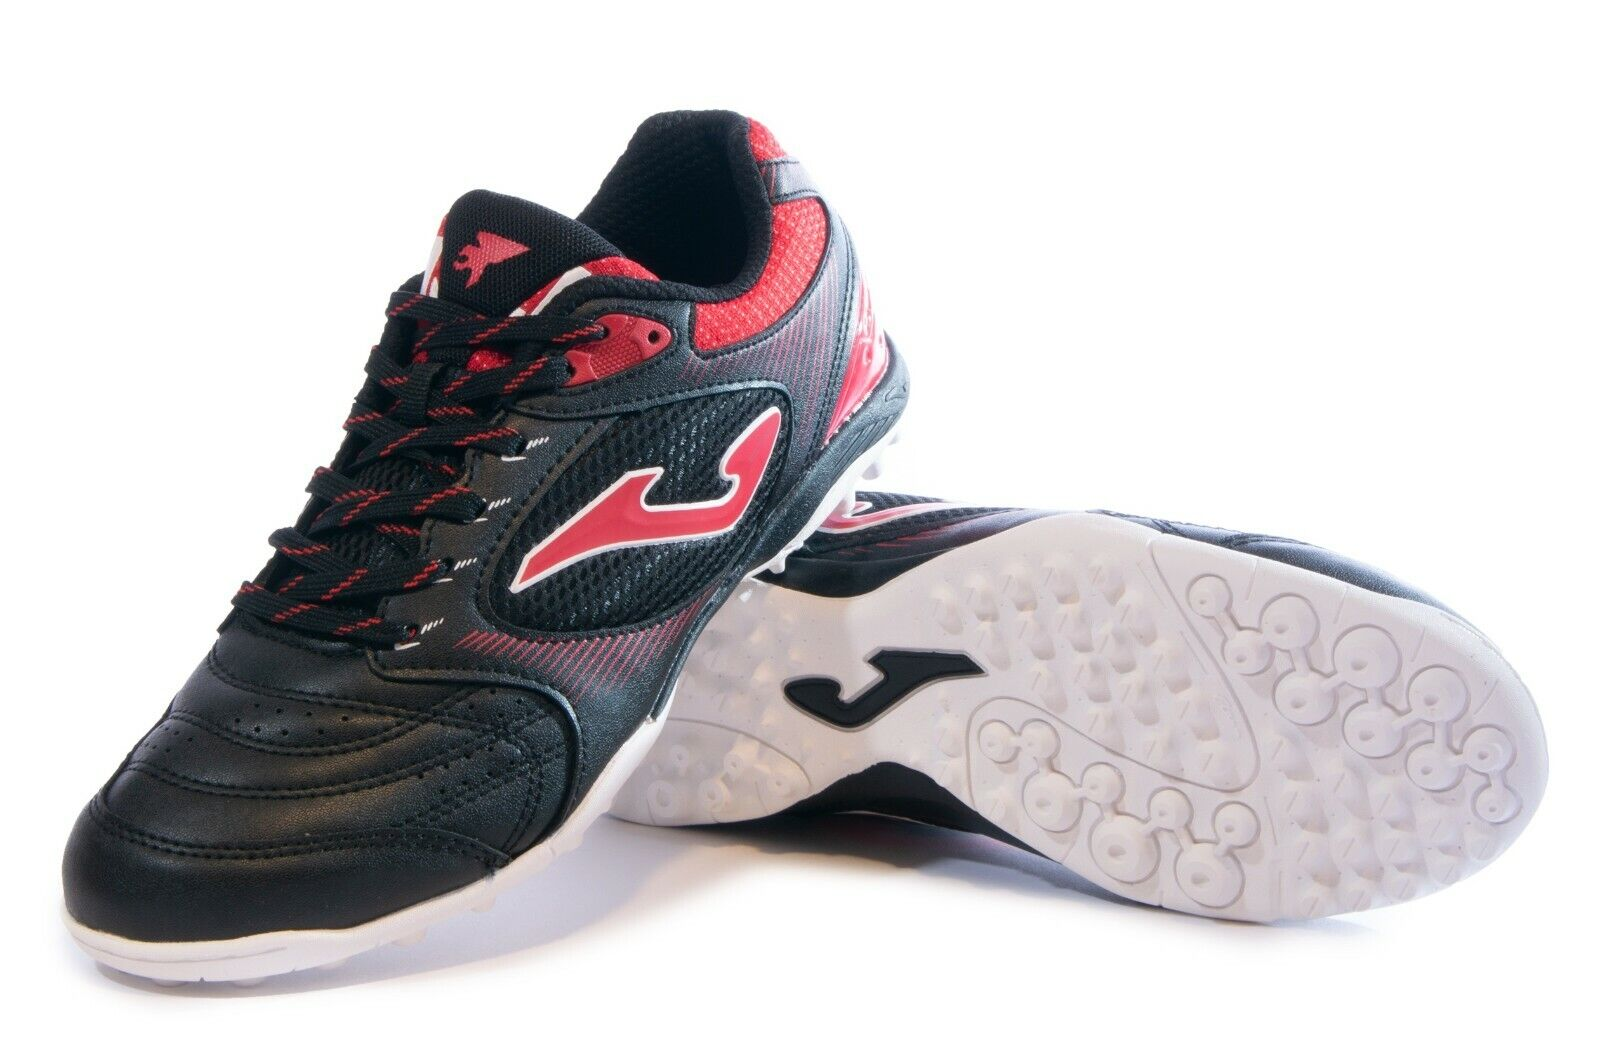 Joma Men's Dribling Turf Soccer Shoe  Exclusively by Virtual